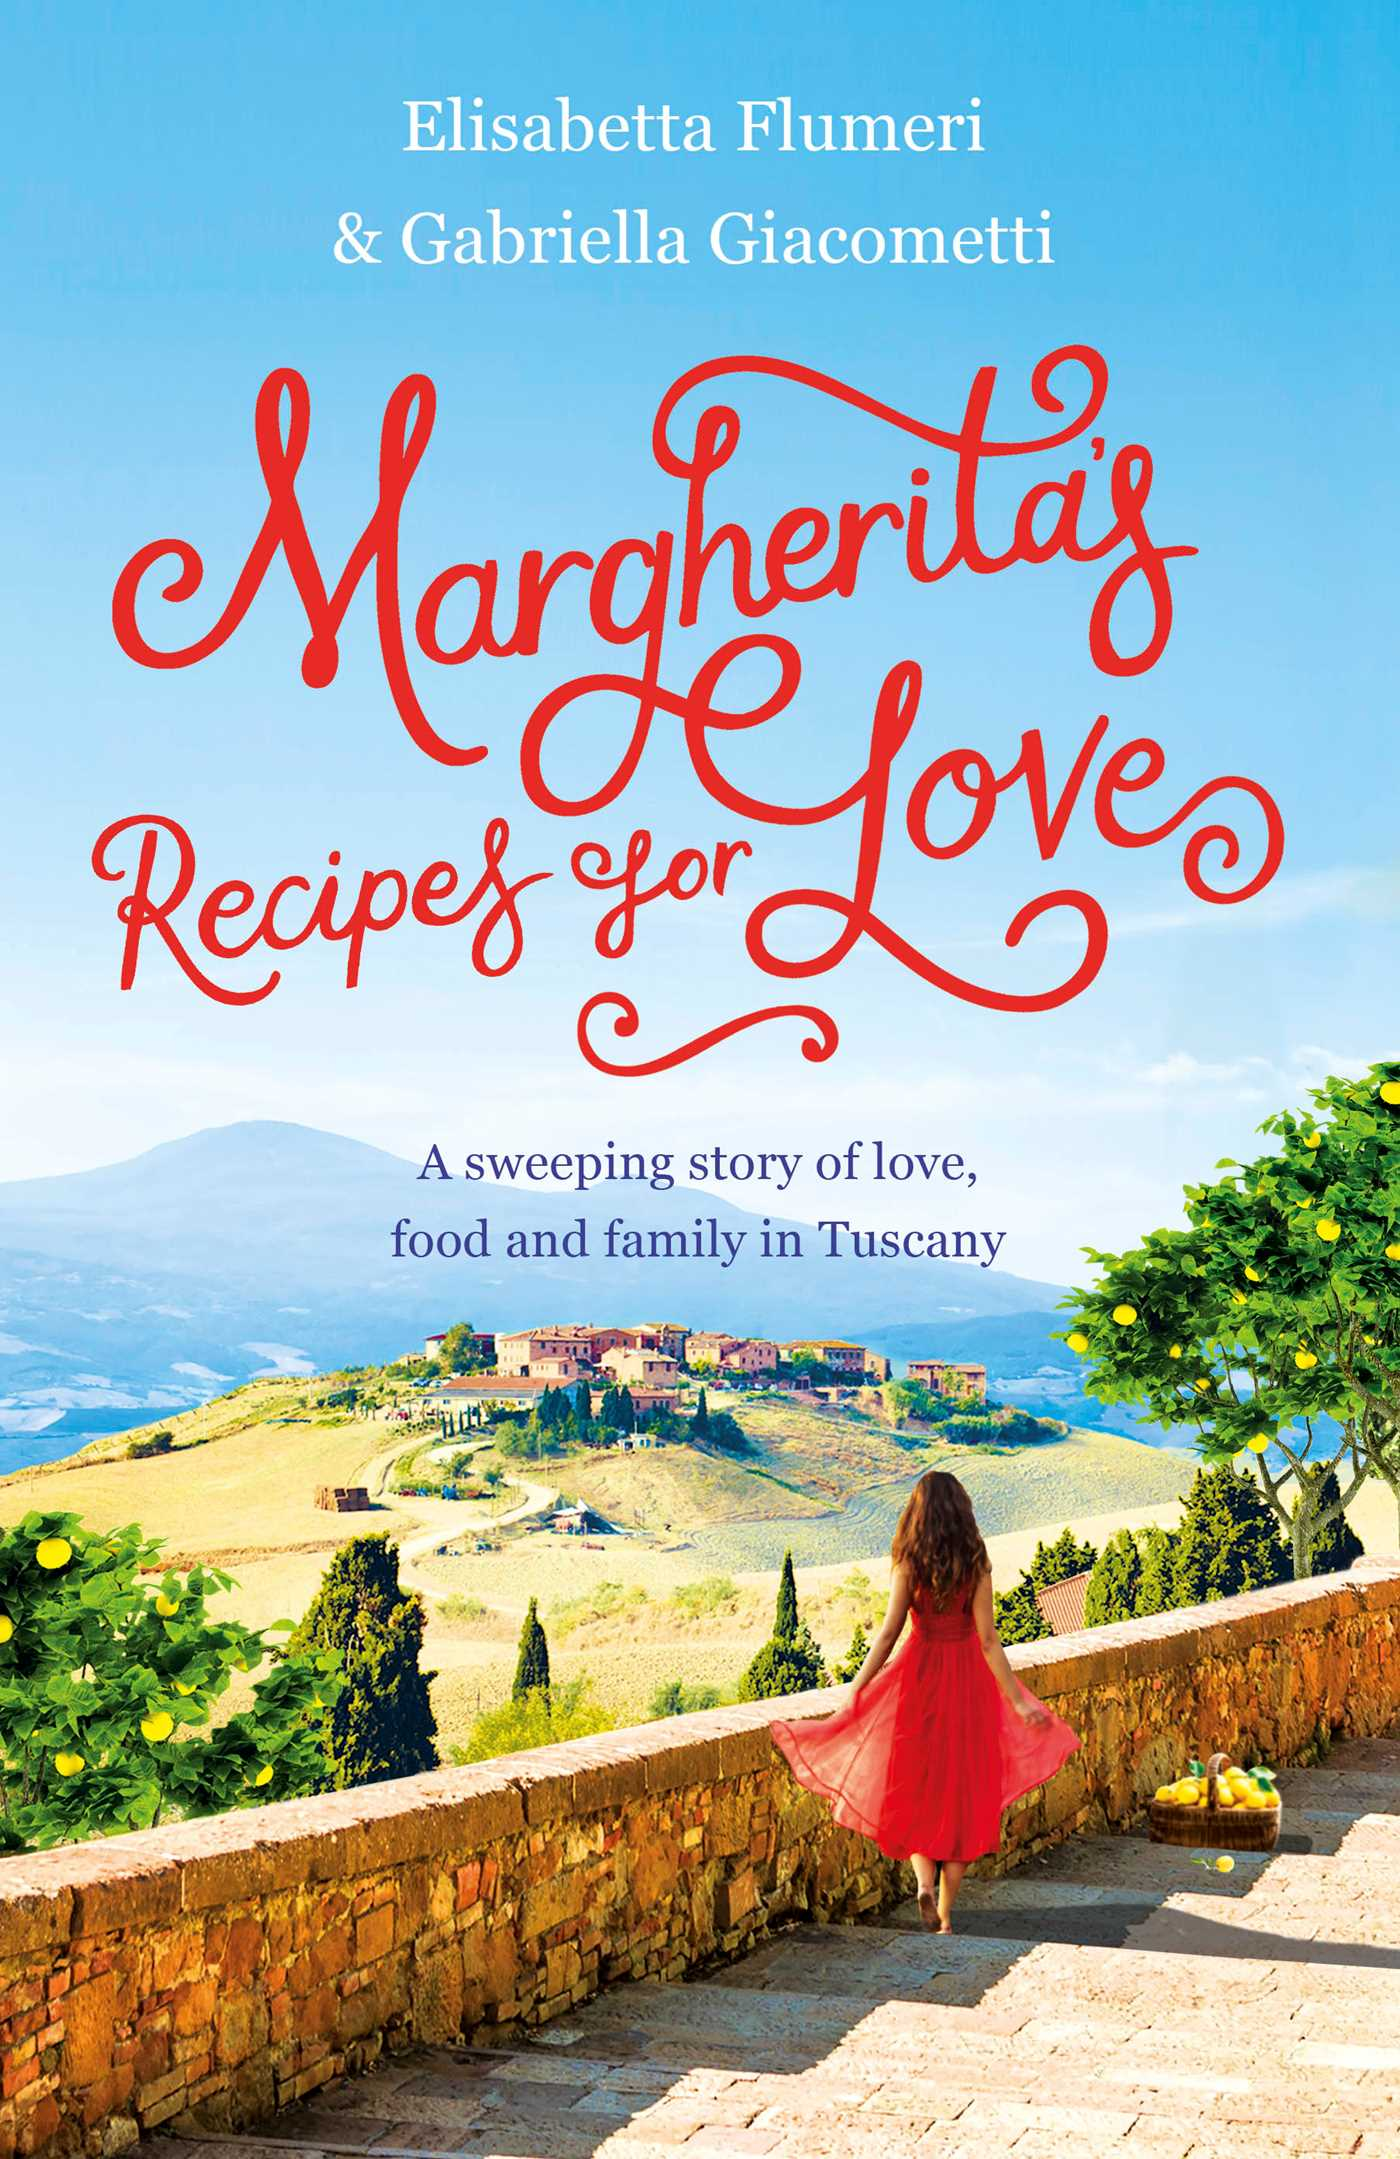 Margheritas recipes for love 9781471162695 hr